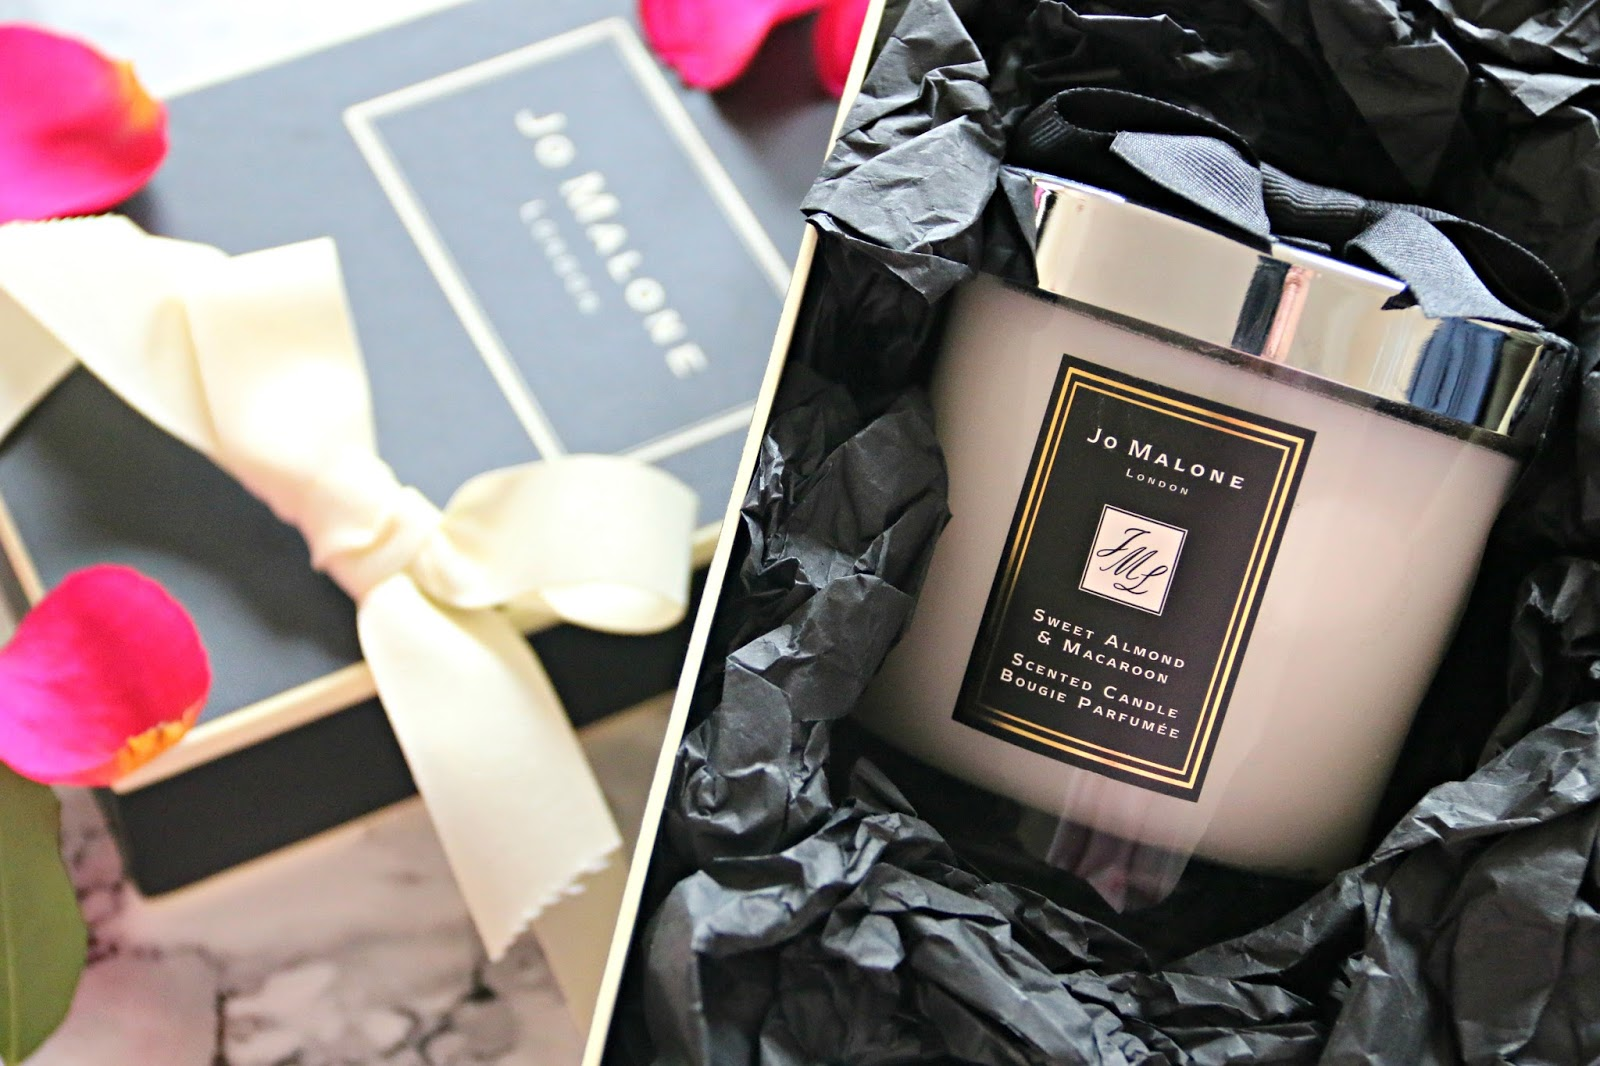 Jo Malone Sweet Almond and Macaroon Home Candle Gift Guide